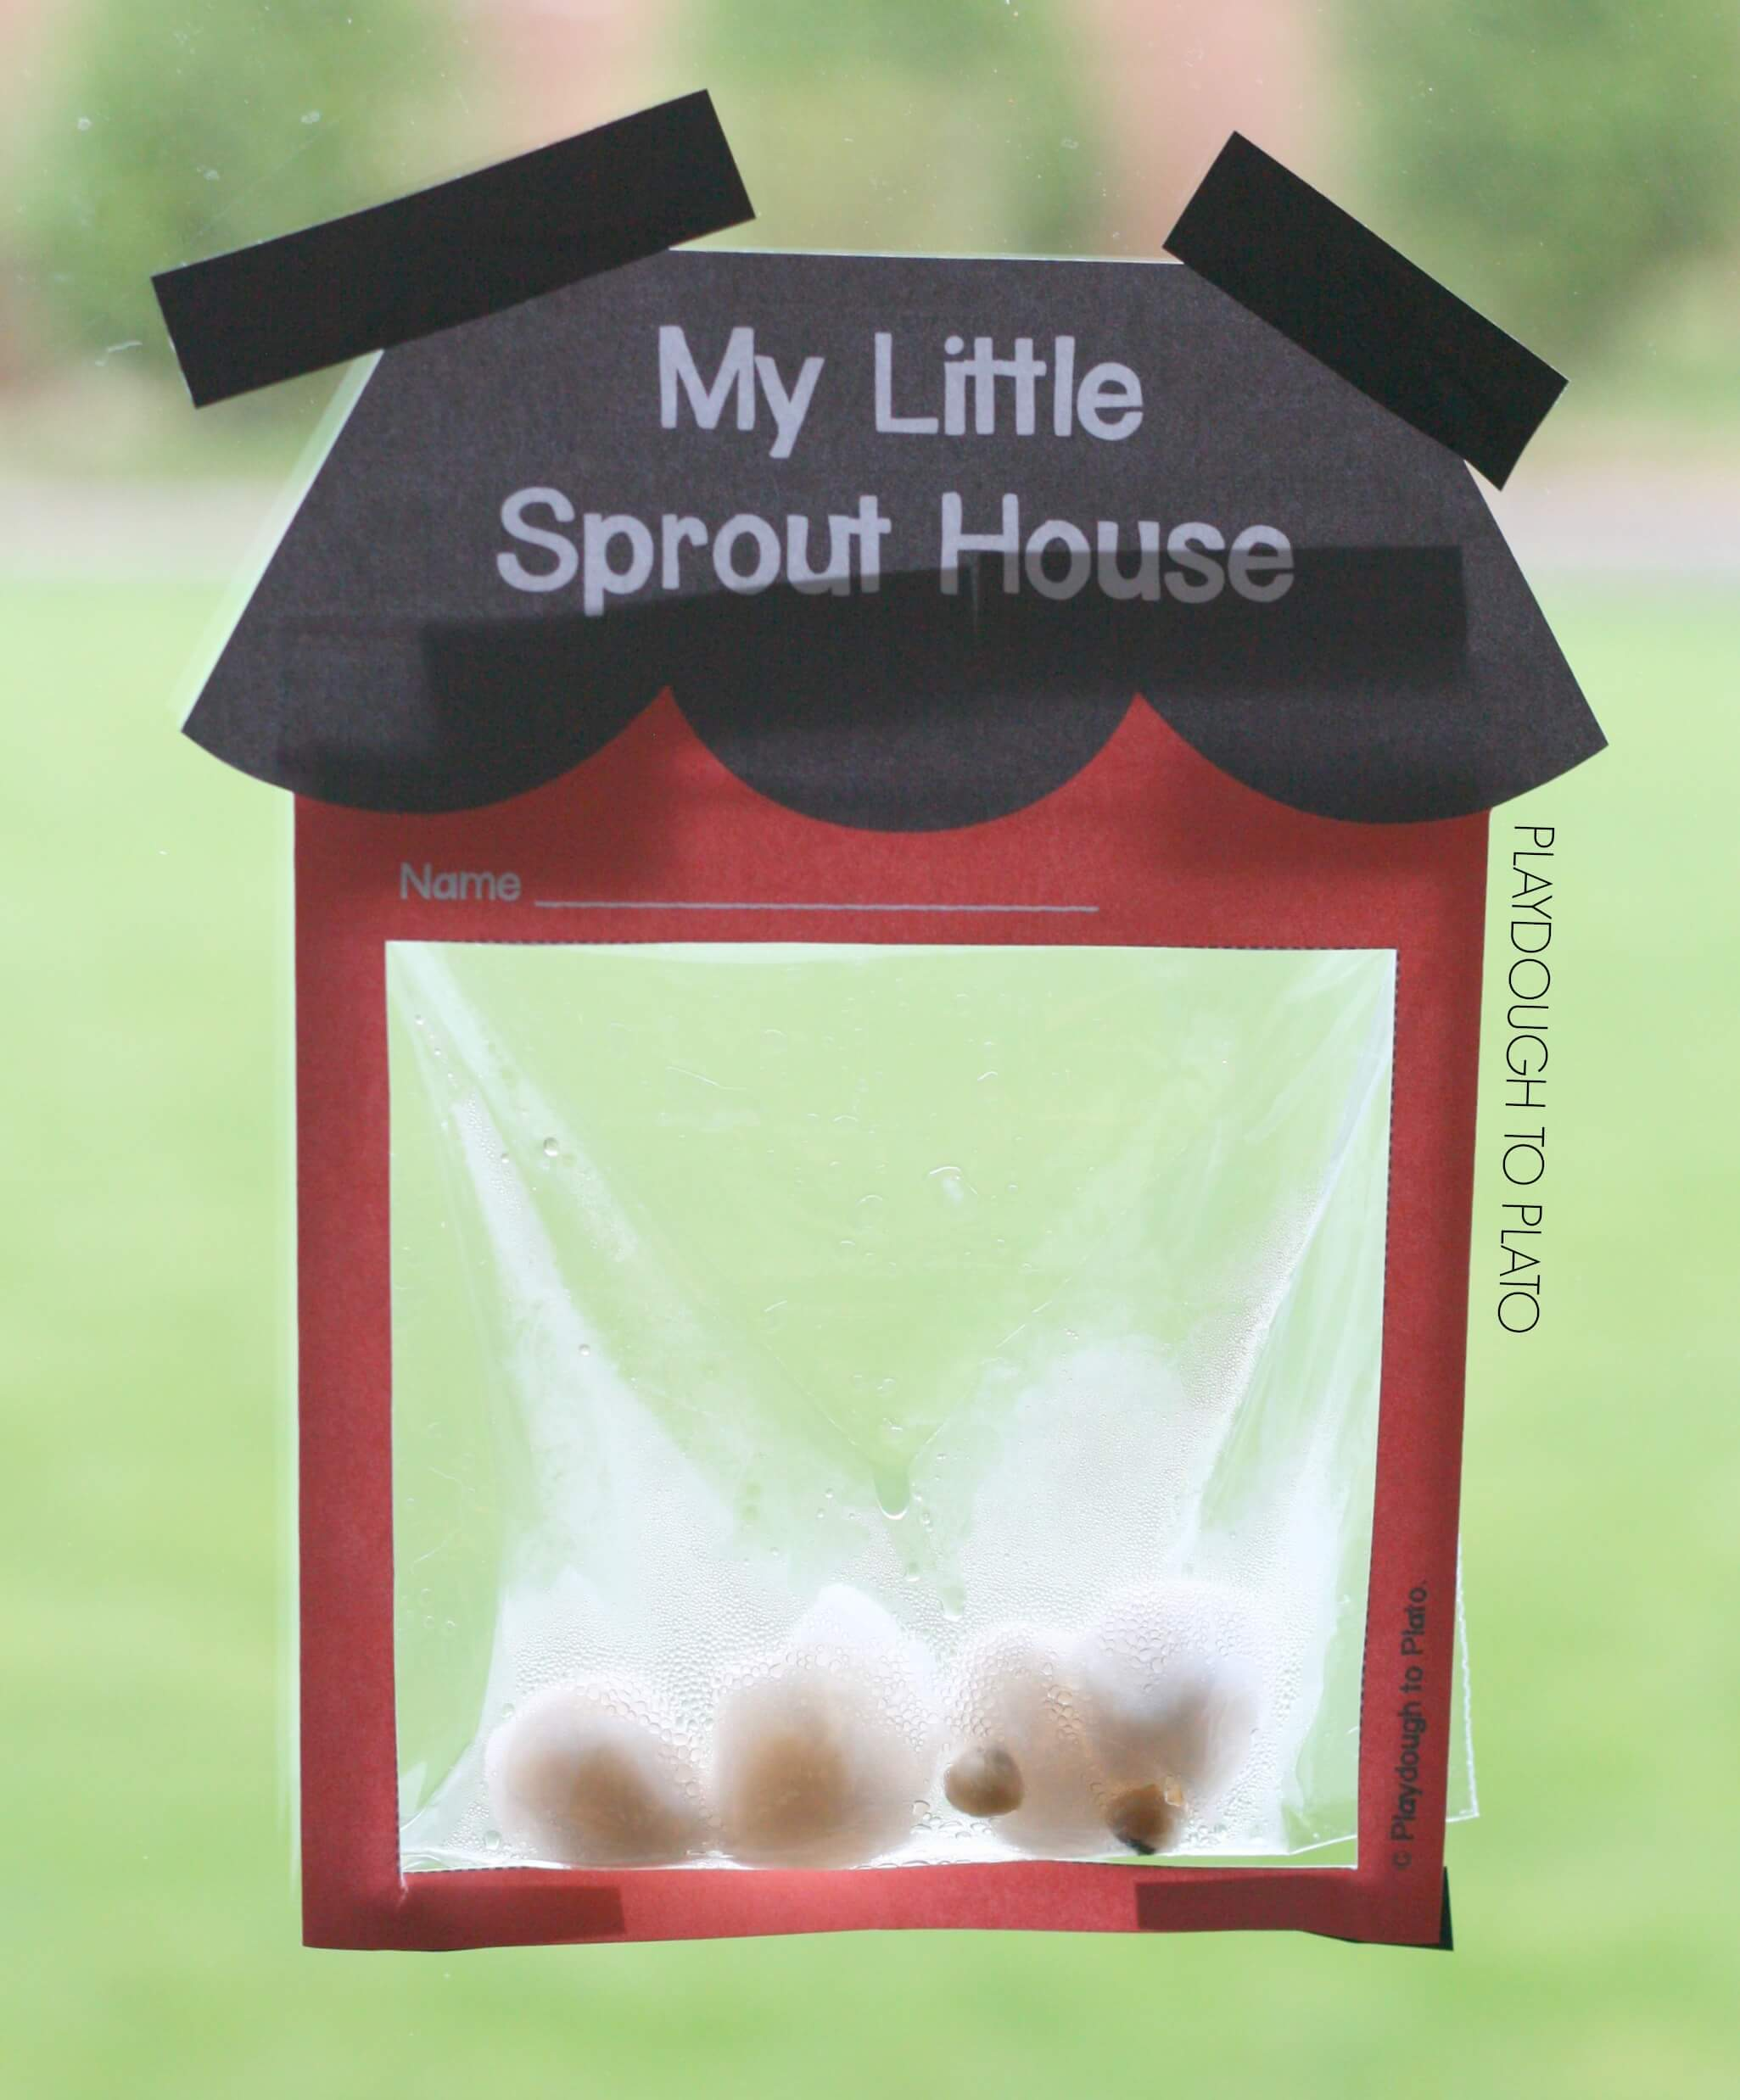 My Little Sprout House